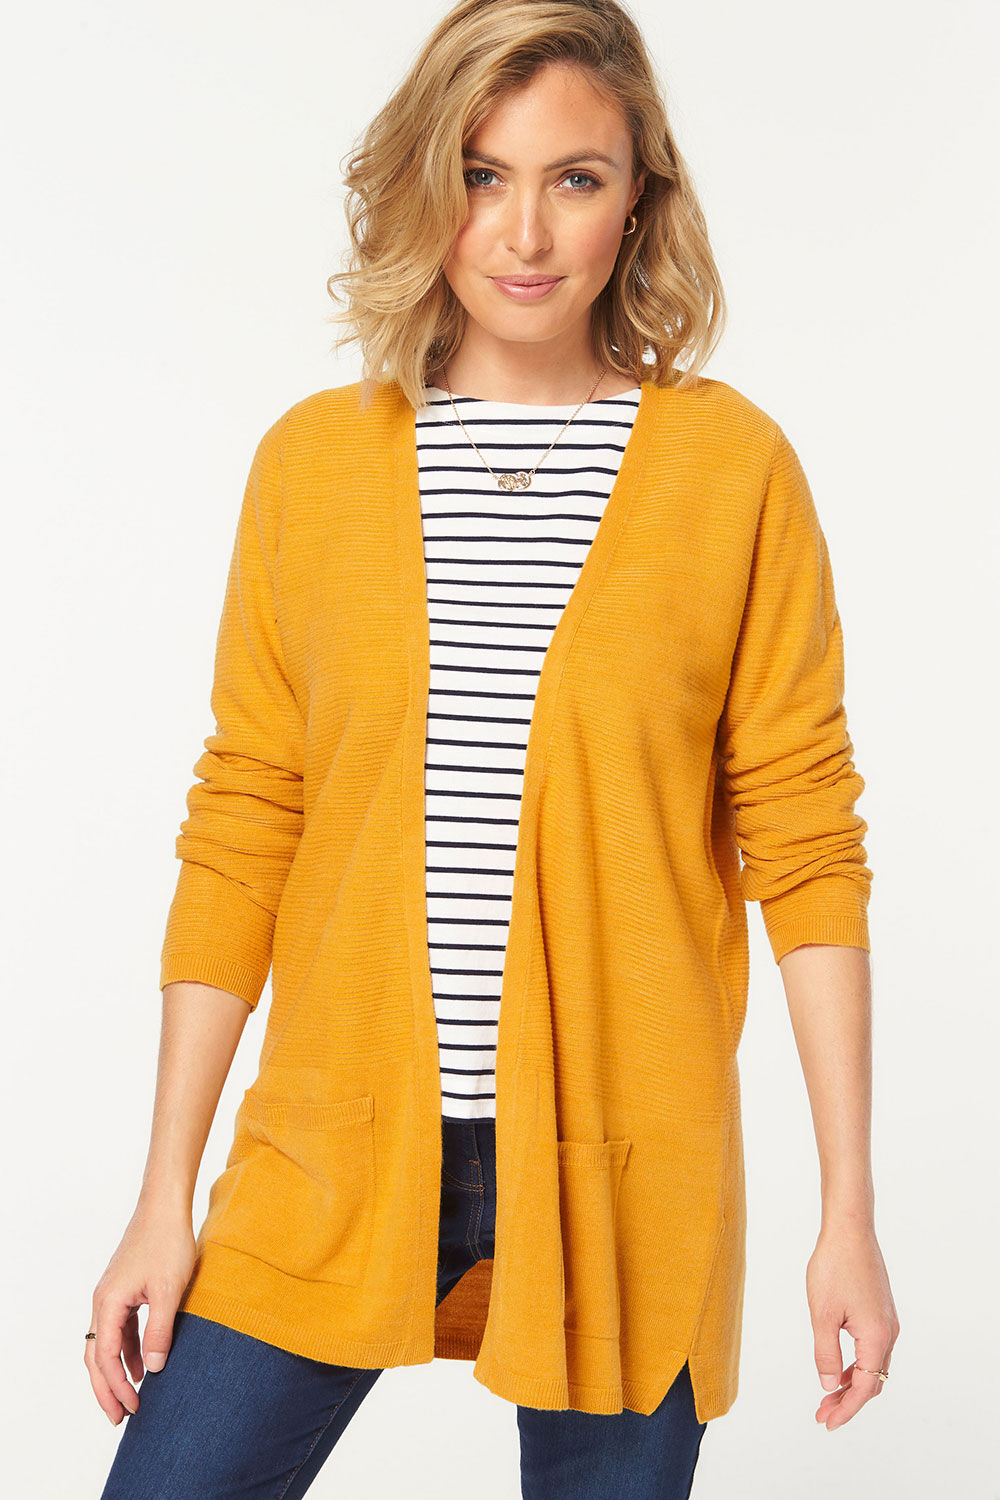 Ladies' Cardigans | Cardigans for Women | With Pockets